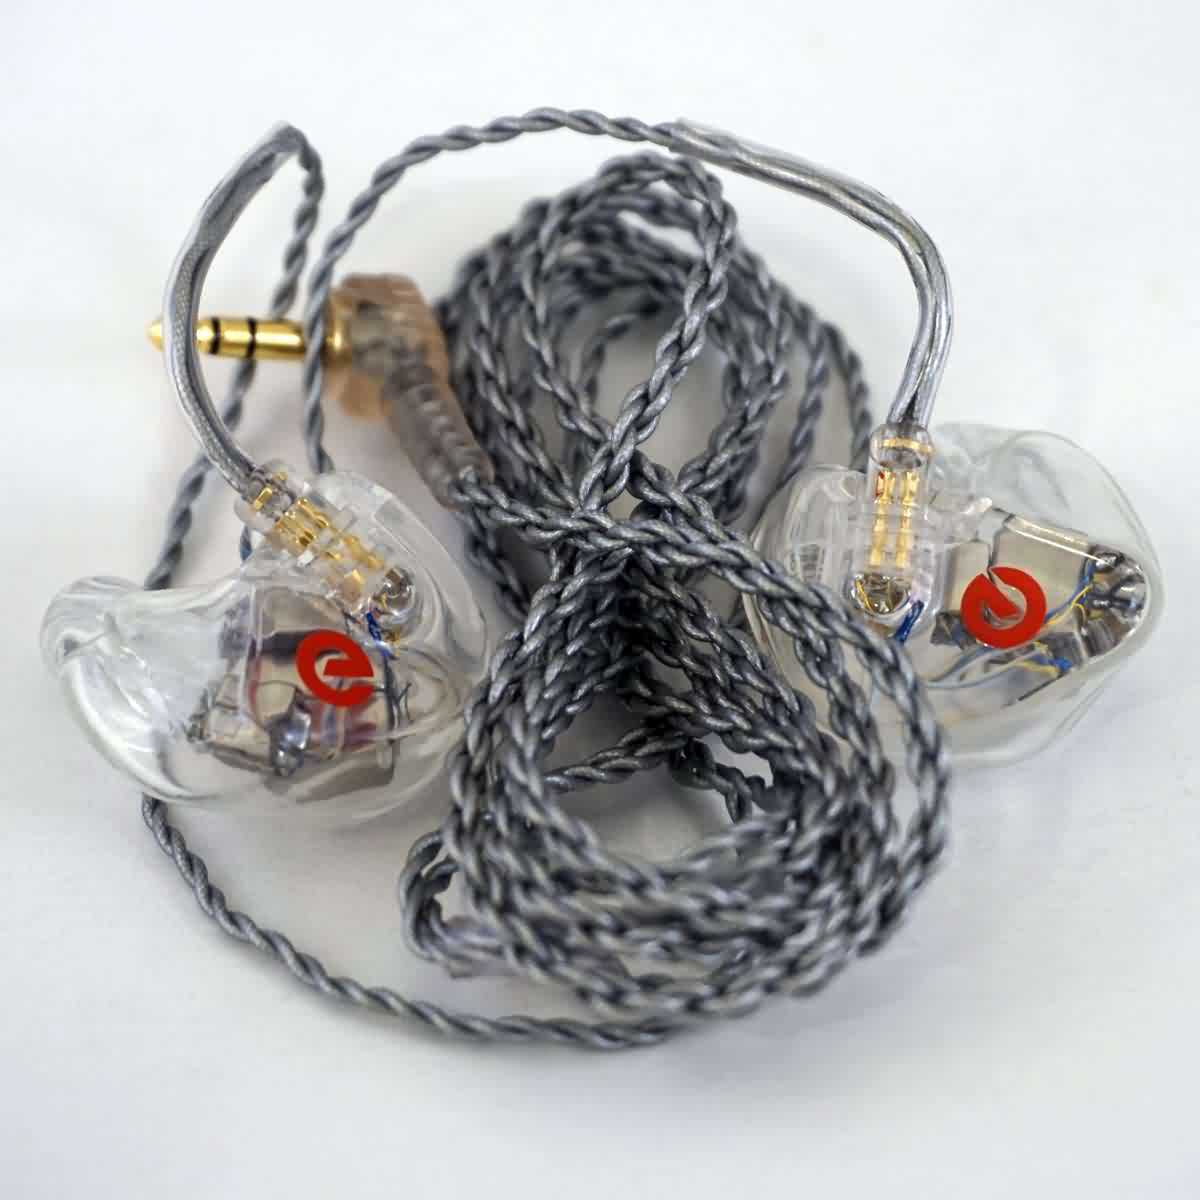 EarWerkz Legend-R custom in-ear monitors